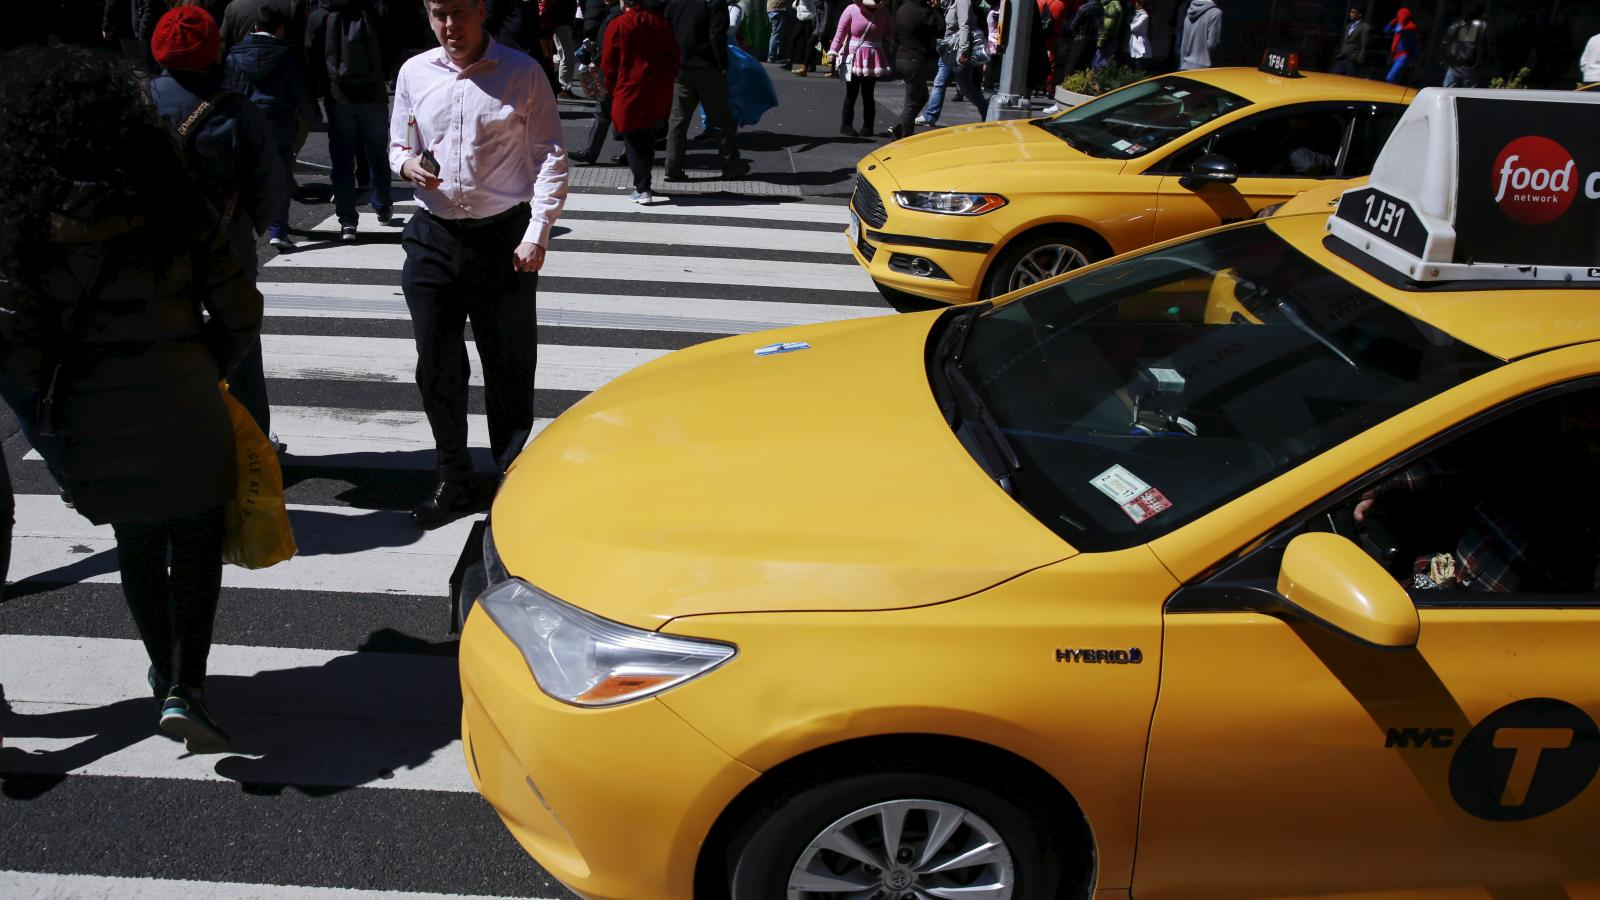 More Americans are driving taxis, thanks to Uber and Lyft